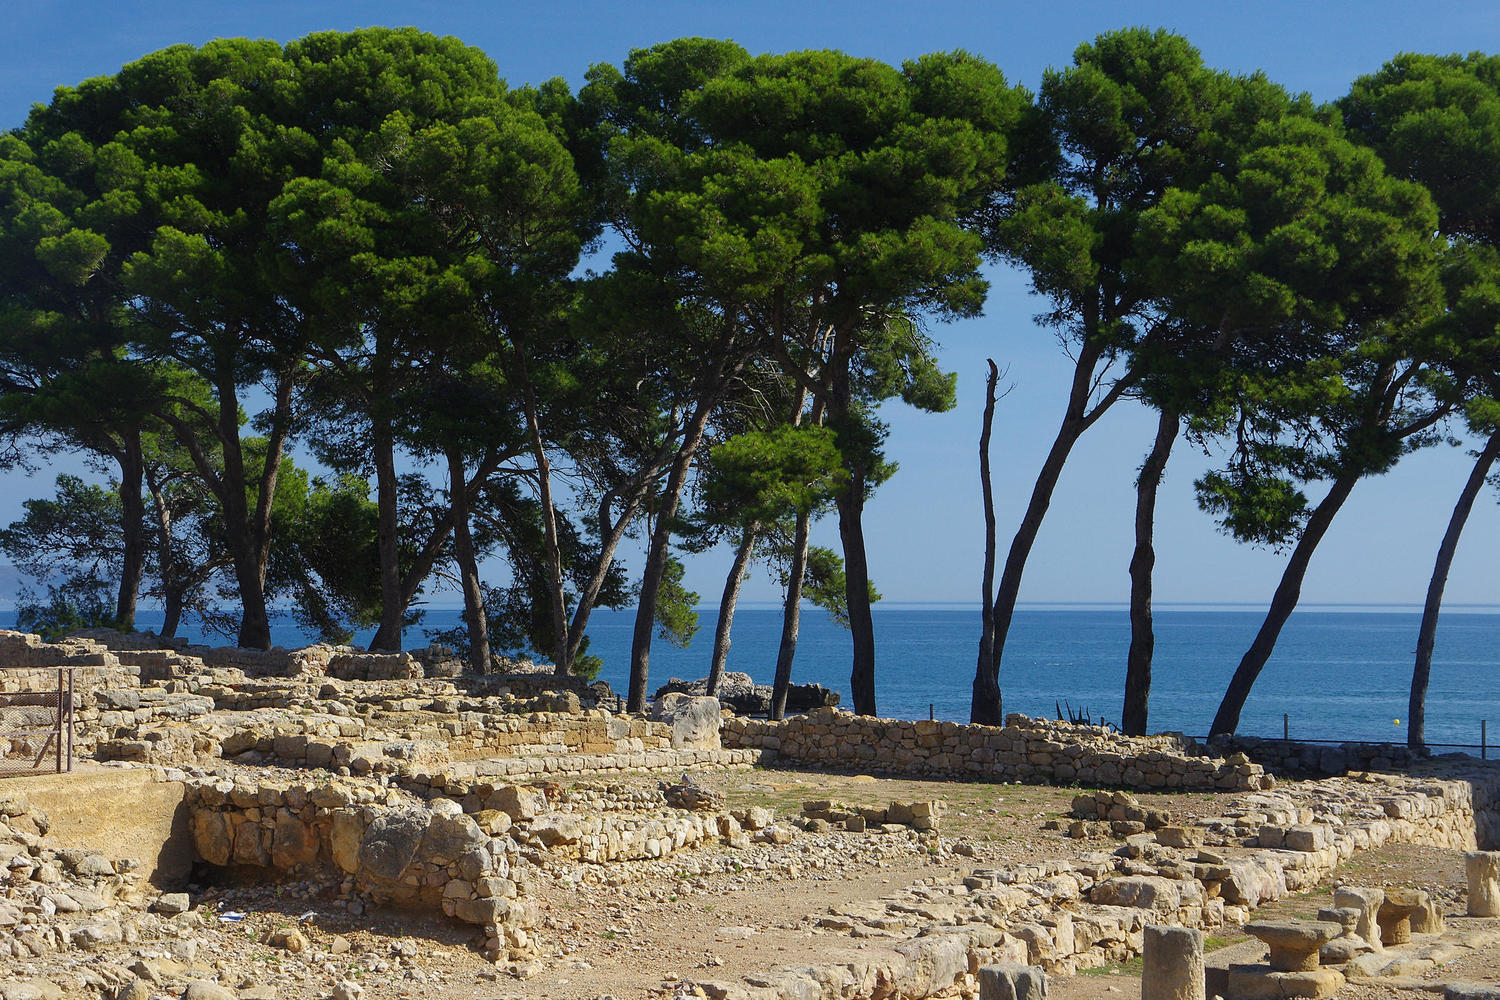 Ruins, trees and the sea at Empuries